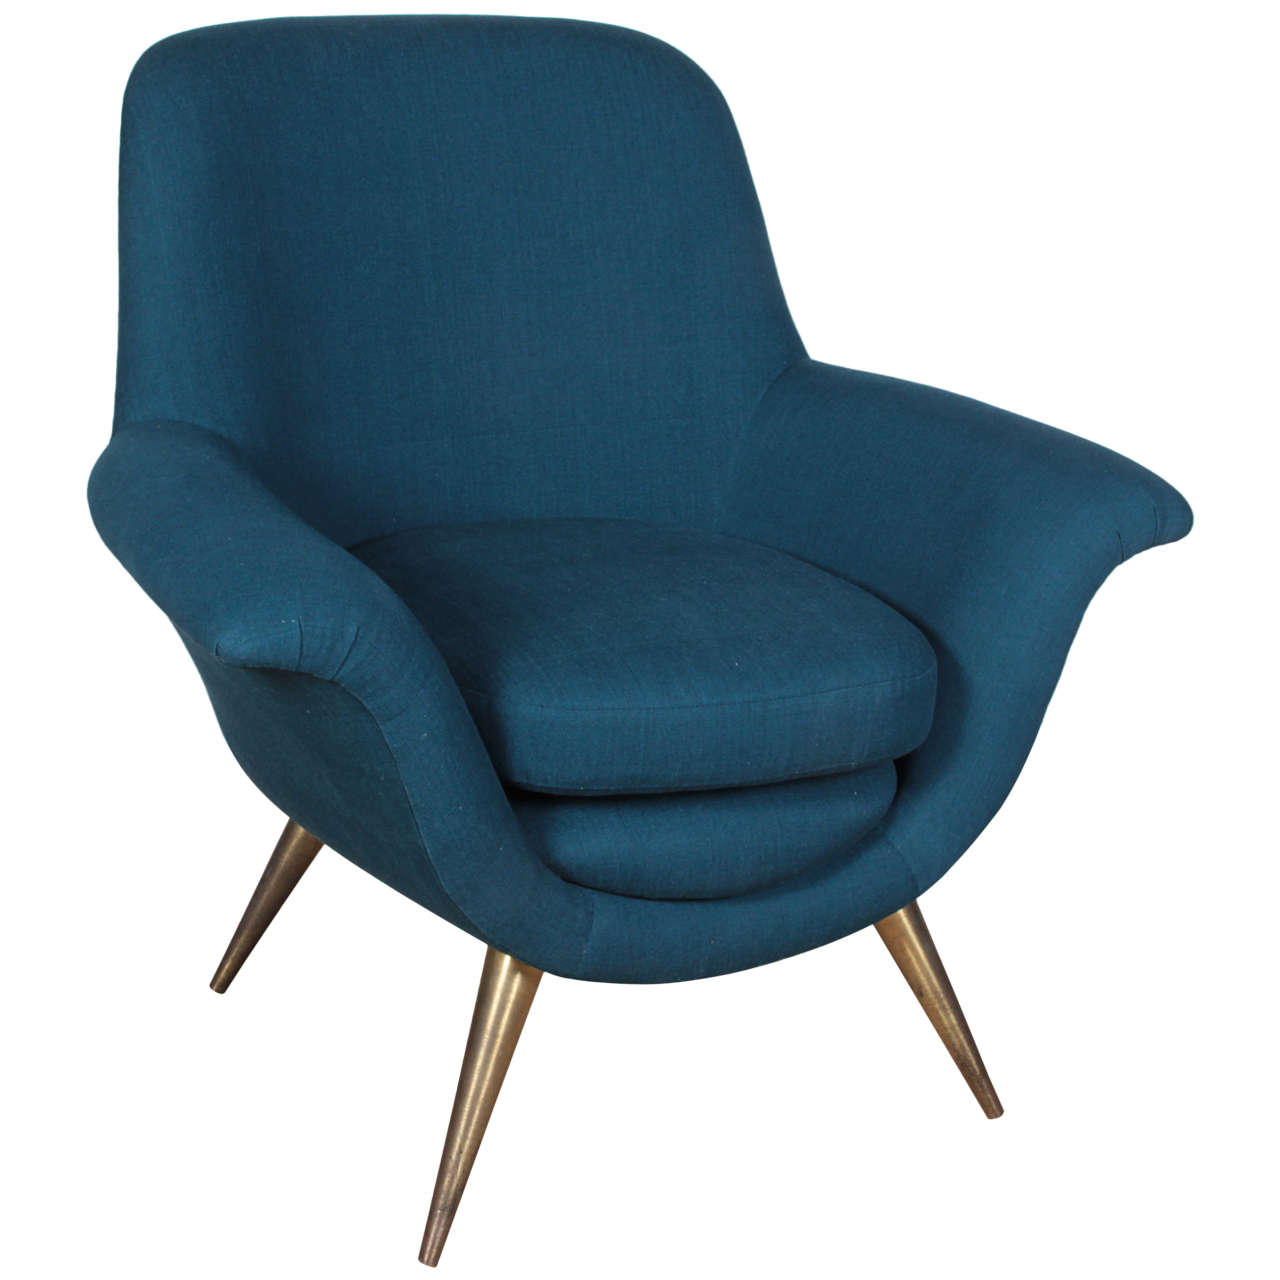 1960s Tulip Chairs At 1stdibs Clearance Parker Knoll